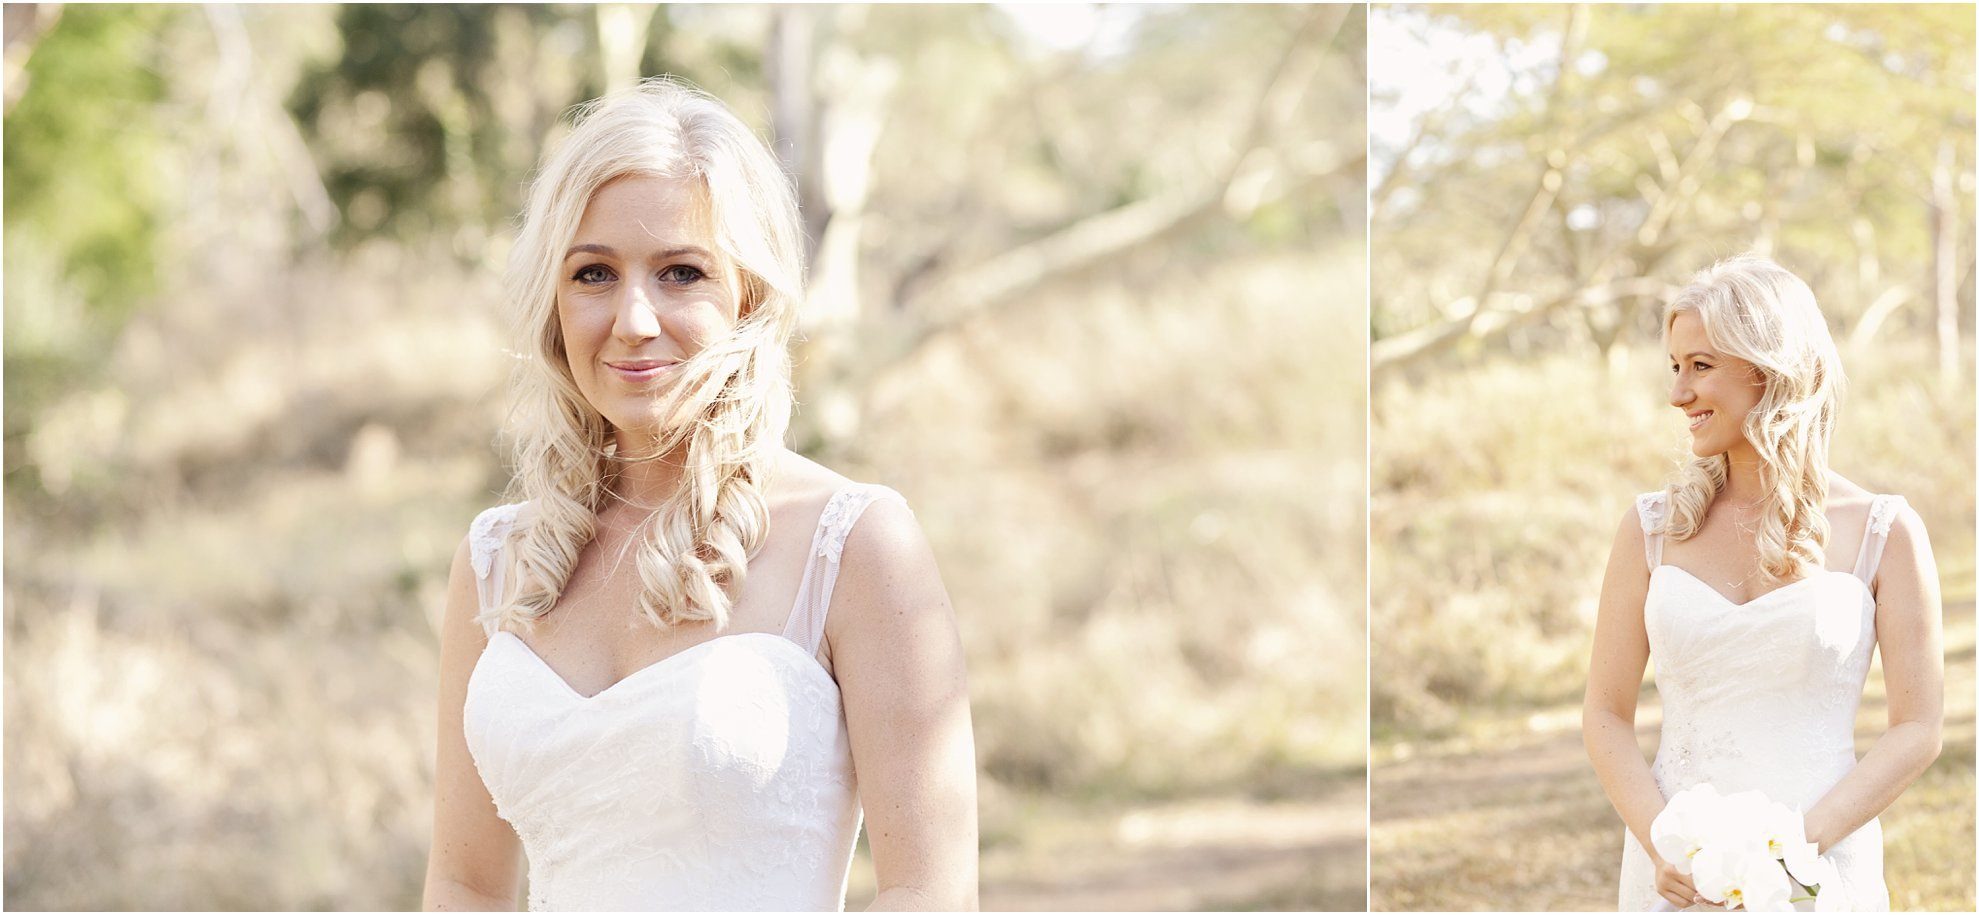 FIONA CLAIR PHOTOGRAPHY Jean & Natalie Swart 01 06 2013_0043